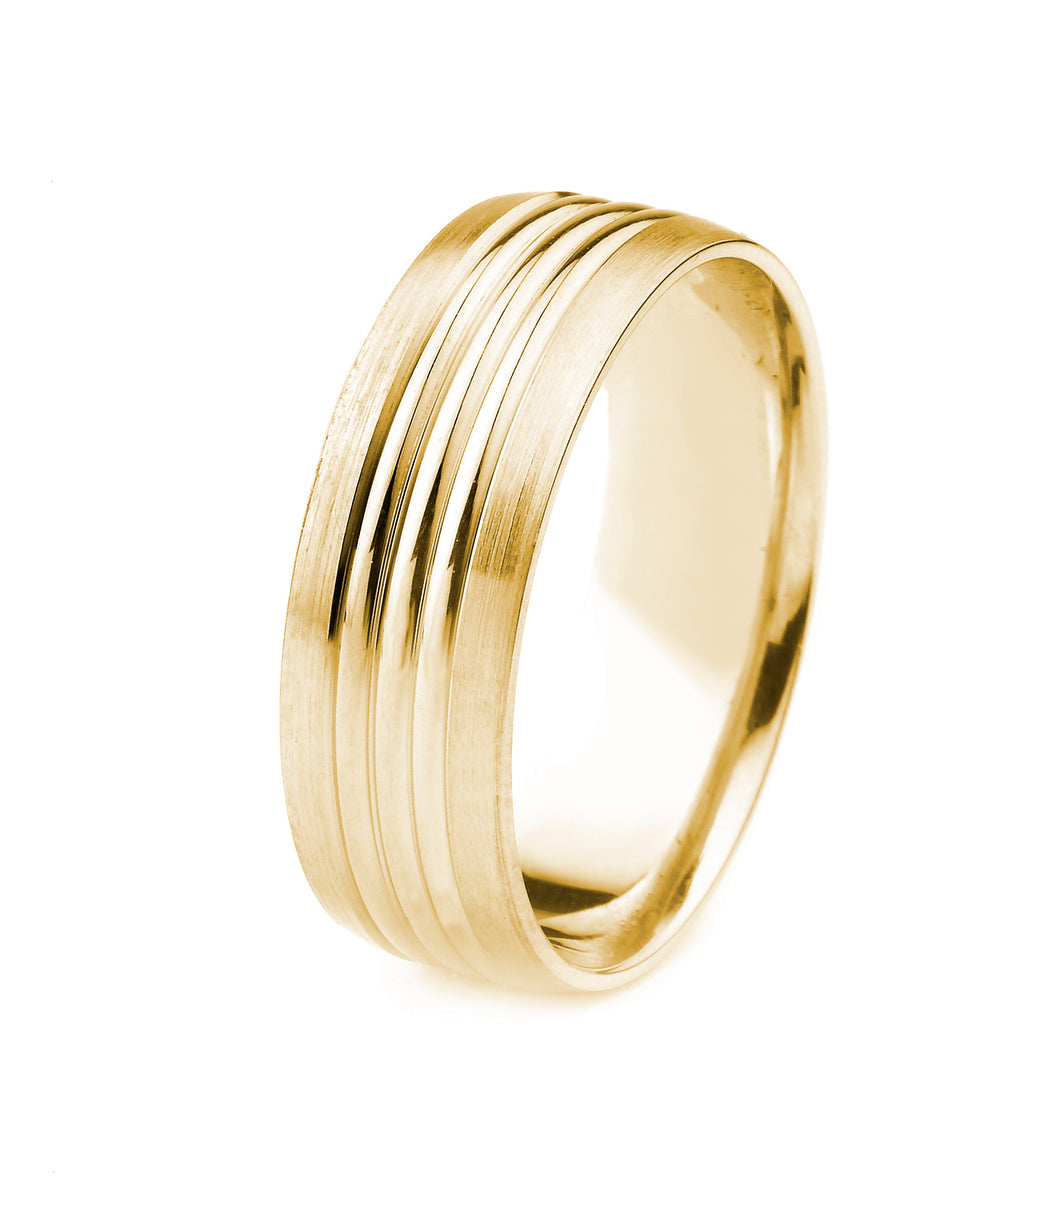 14K GOLD MEN'S WEDDING BAND WITH THREE POLISHED GROOVES AND SATIN FINISH EDGES